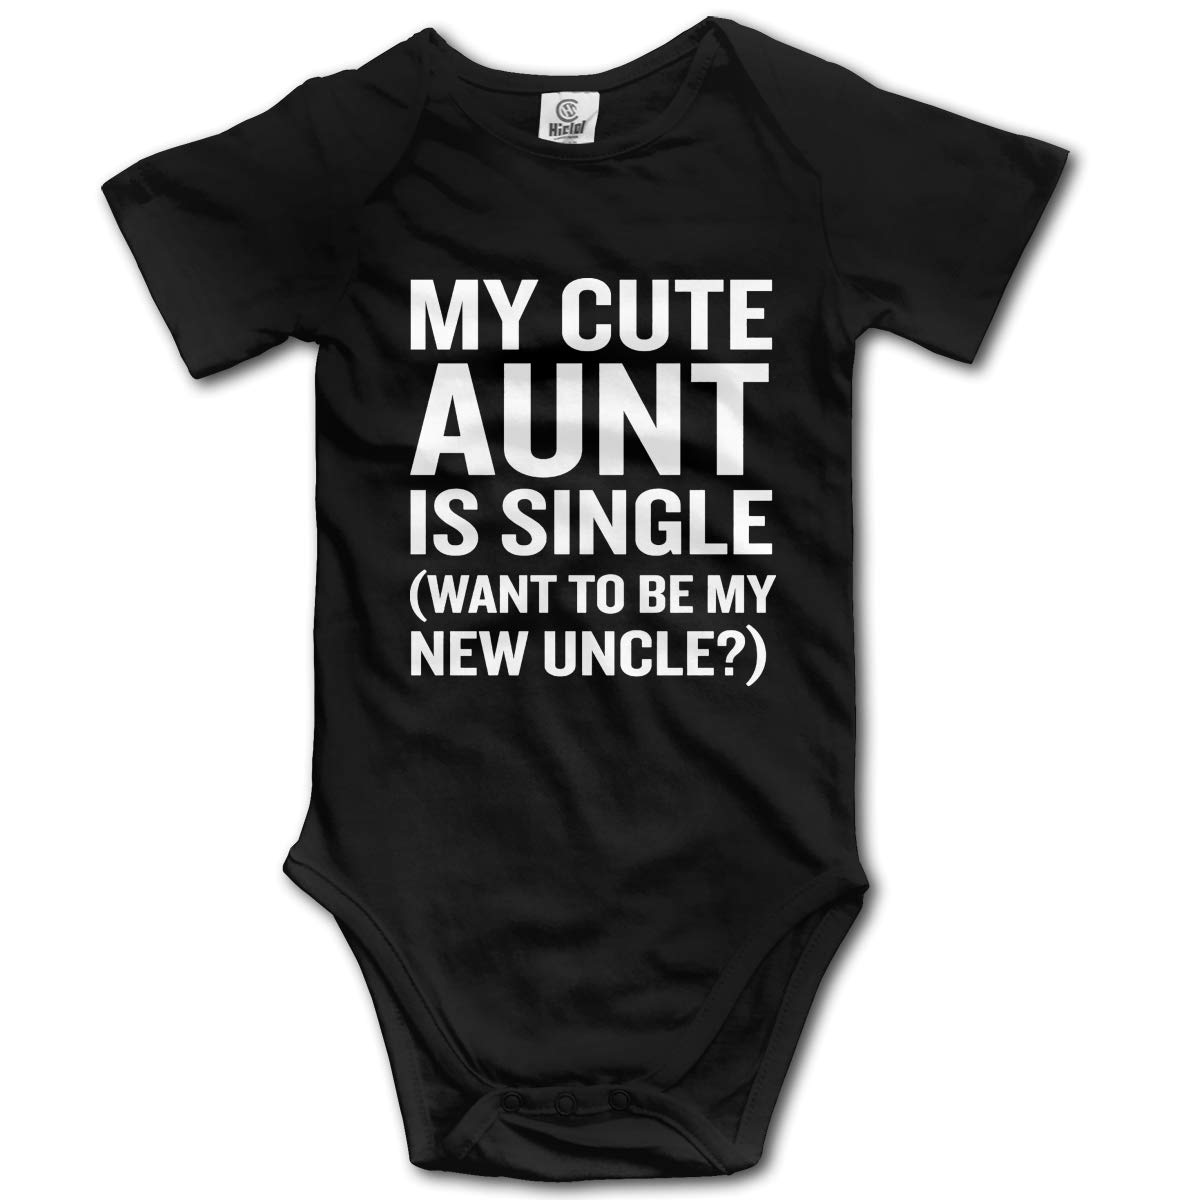 FAFU/&SKY My Cute Aunt is Single Wanna Be My New Uncle Newbaby Baby Romper Summer Short Sleeve Onesie Funny Gift